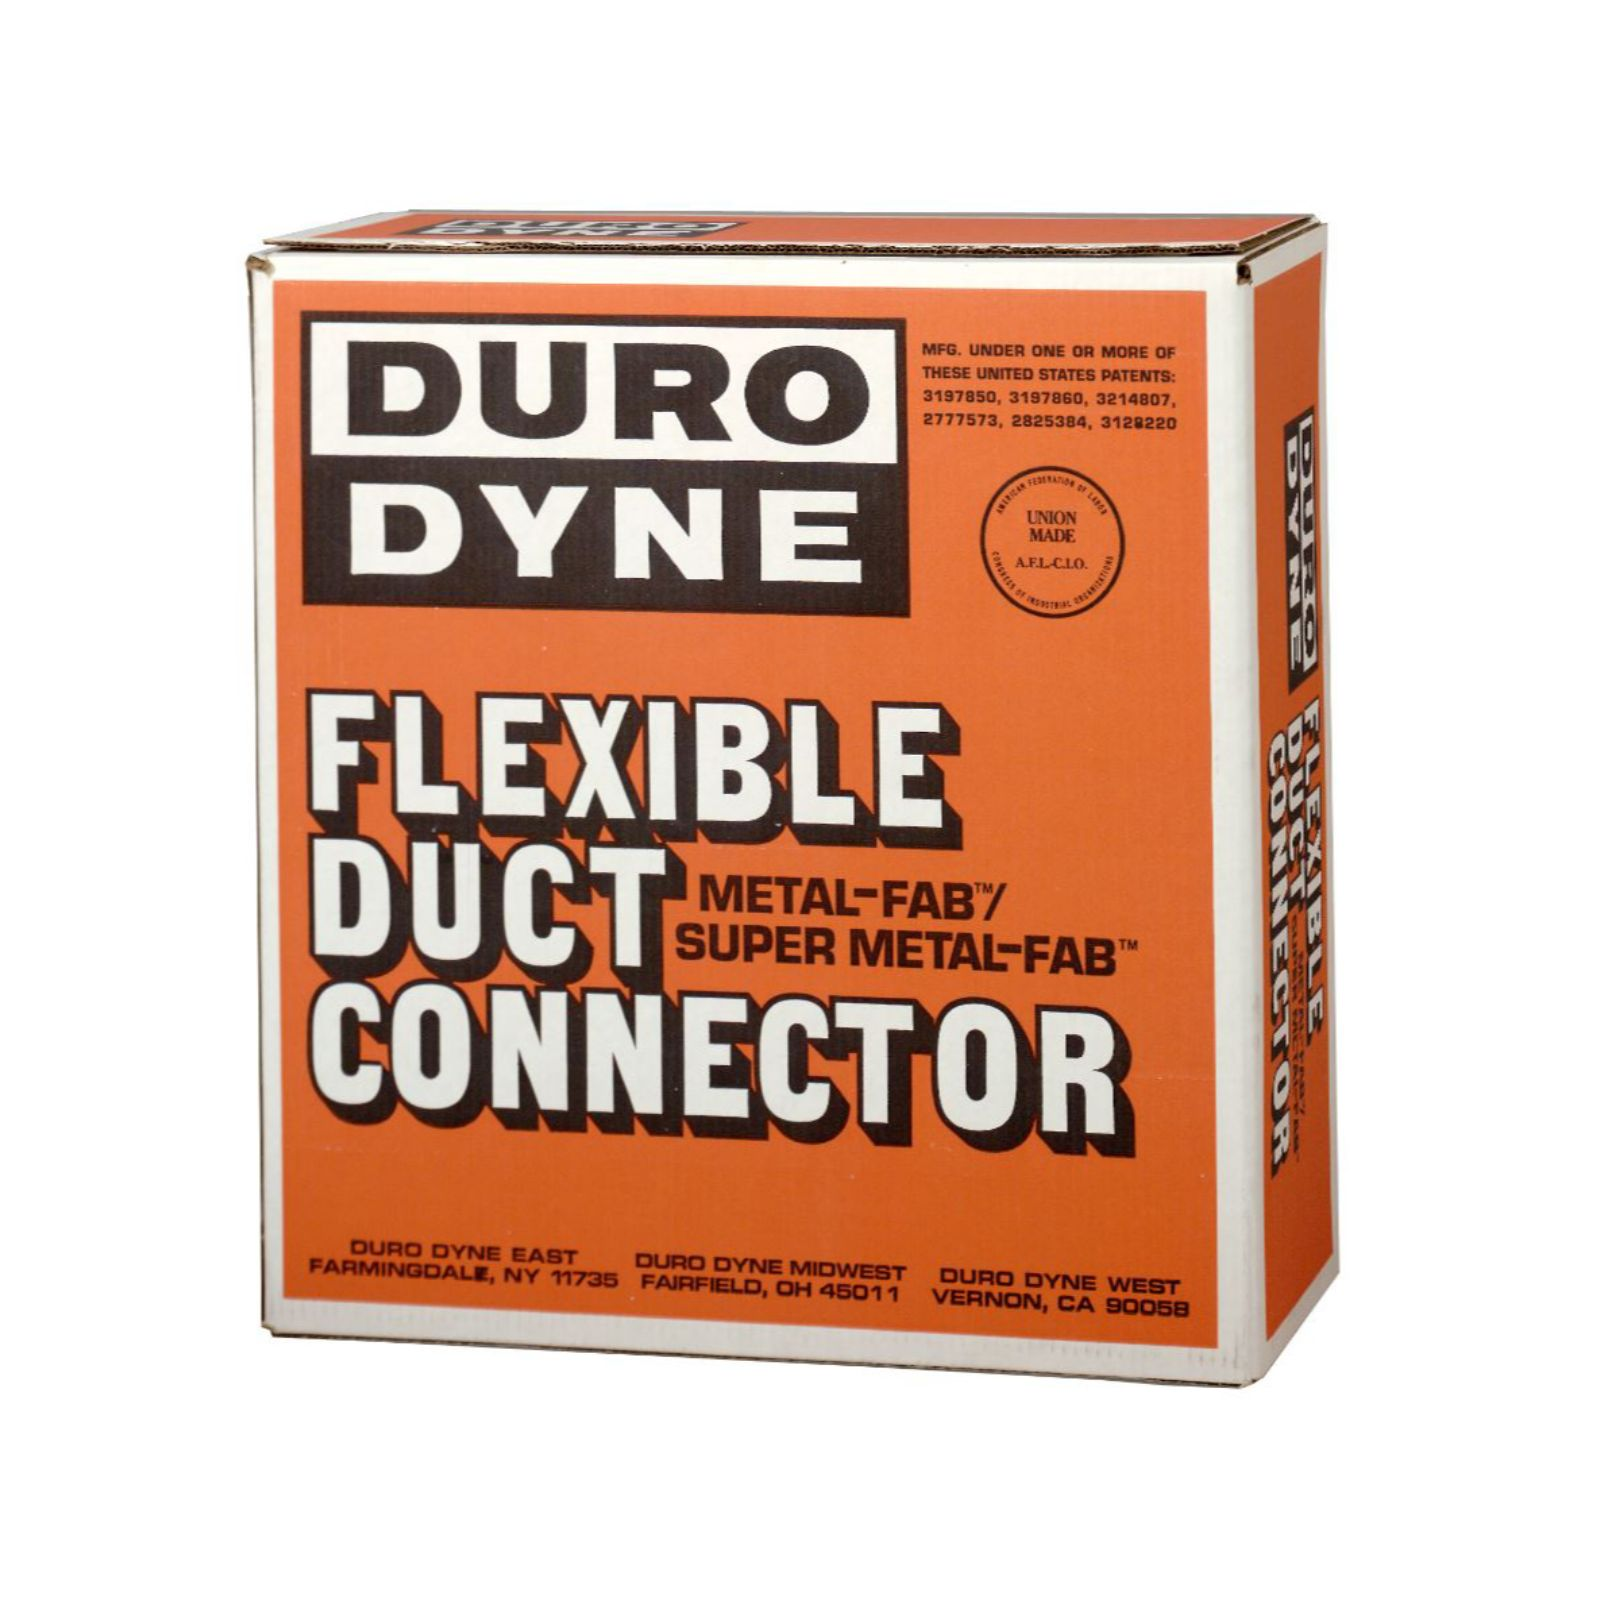 Duro Dyne 10027 -  JRD Junior Durolon Flexible Duct Connector, White, UL #R4462